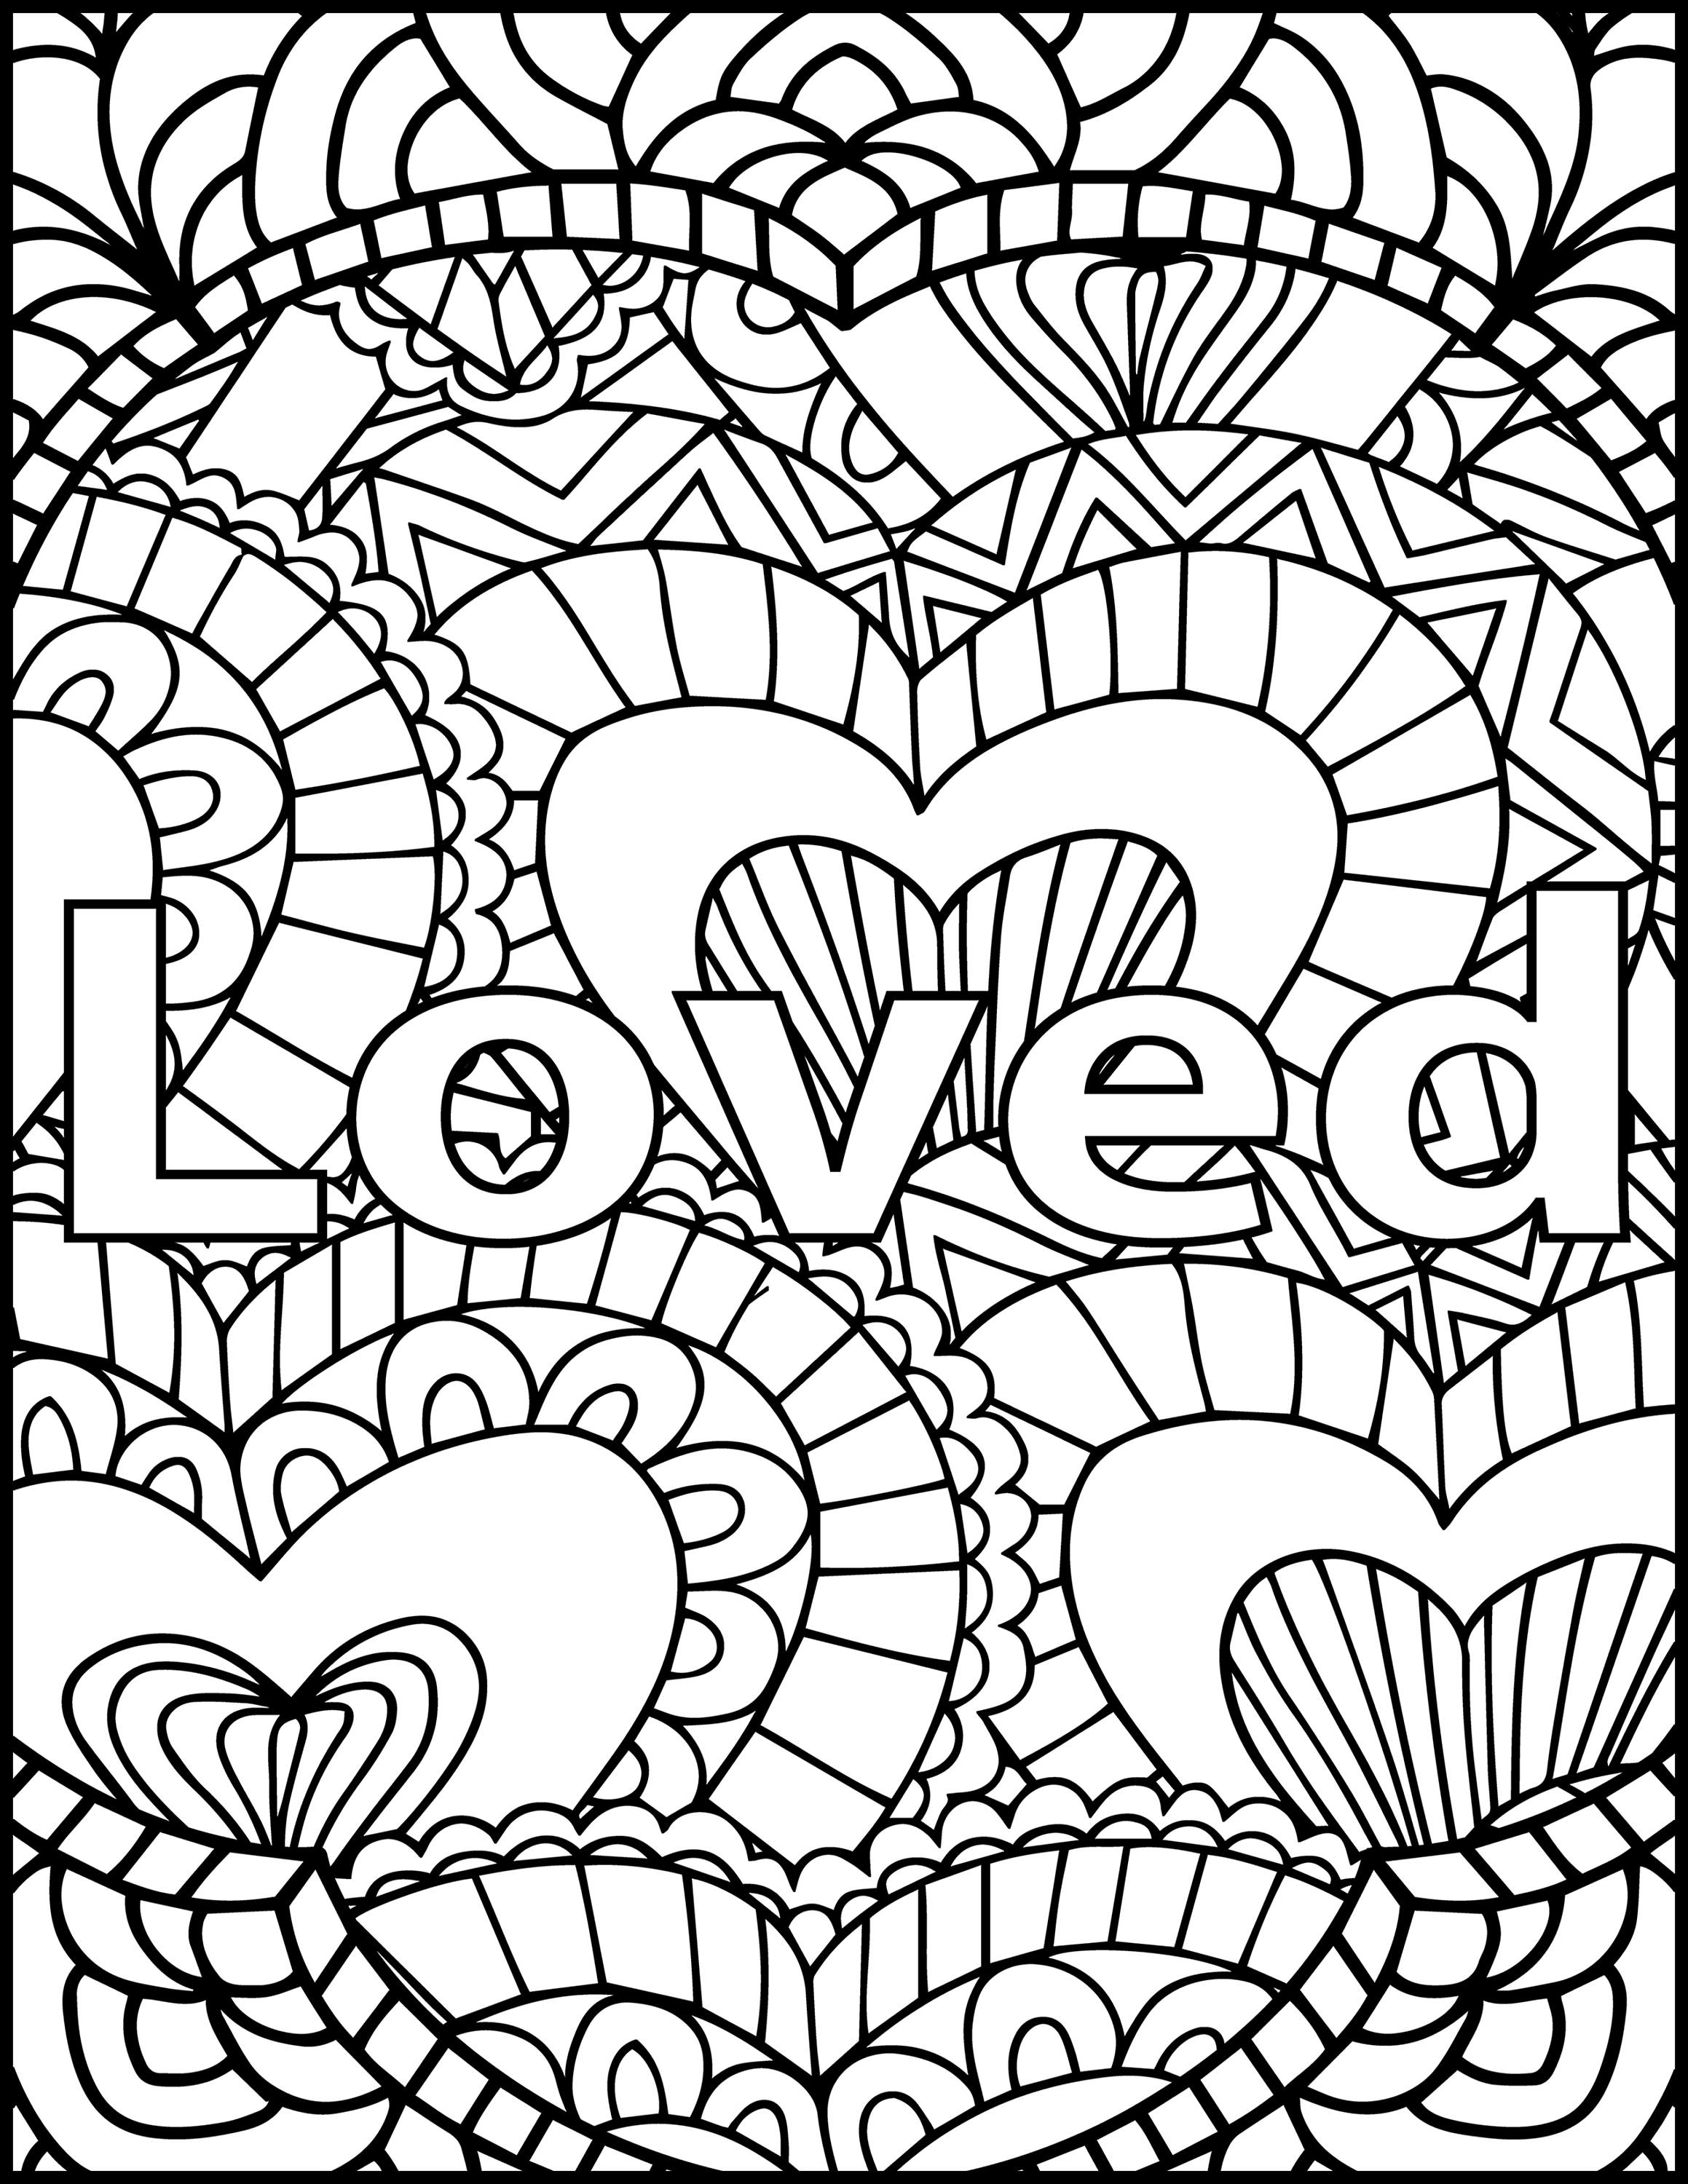 adult coloring pages free free coloring page from adult coloring worldwide art by pages adult free coloring